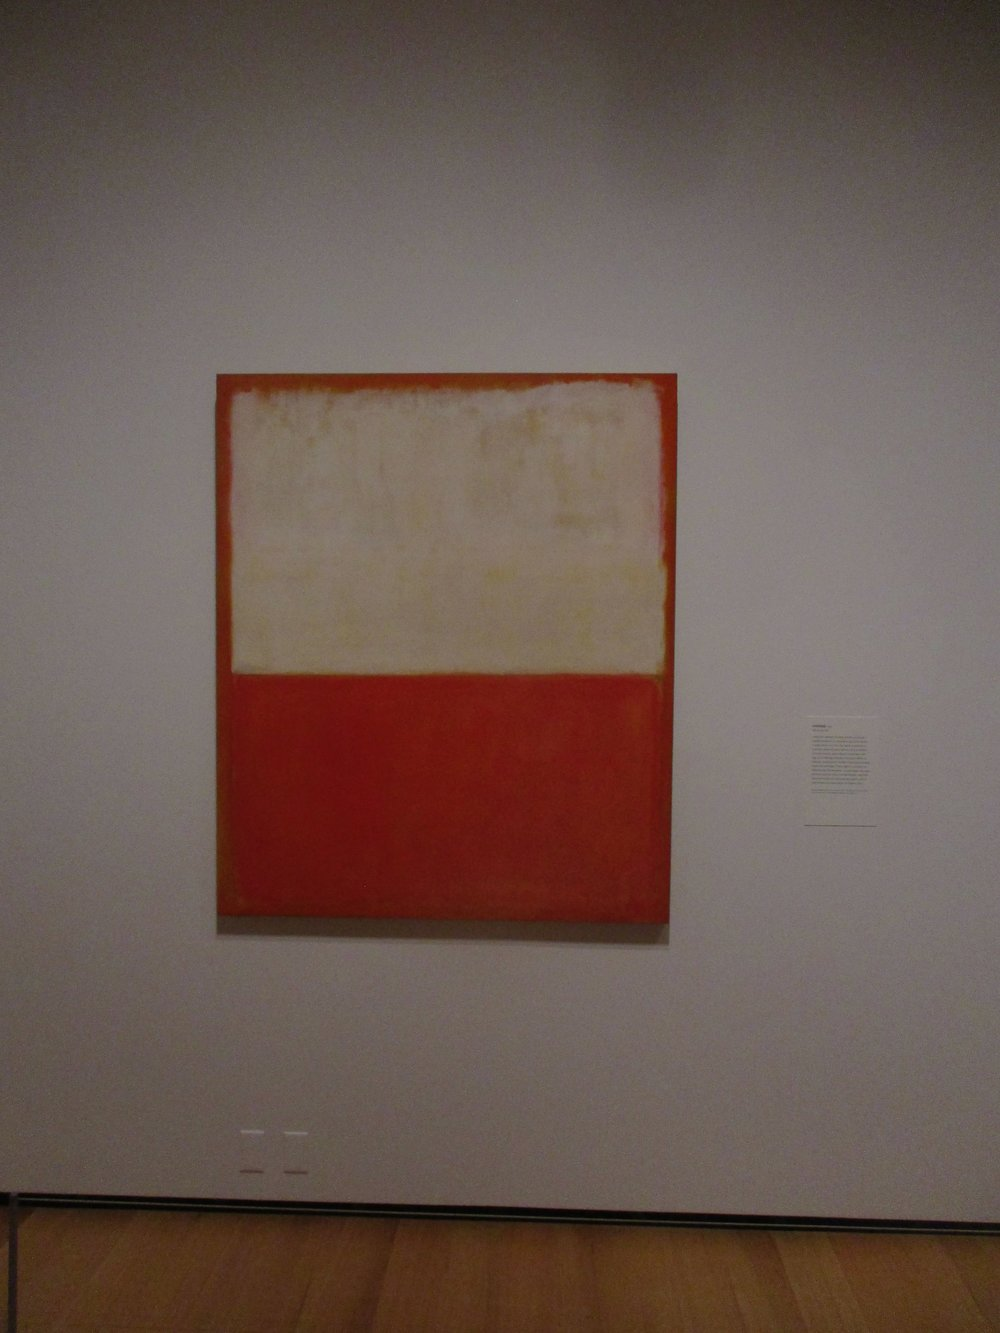 My favorite of the Rothkos. Unsurprisingly, it's orange.